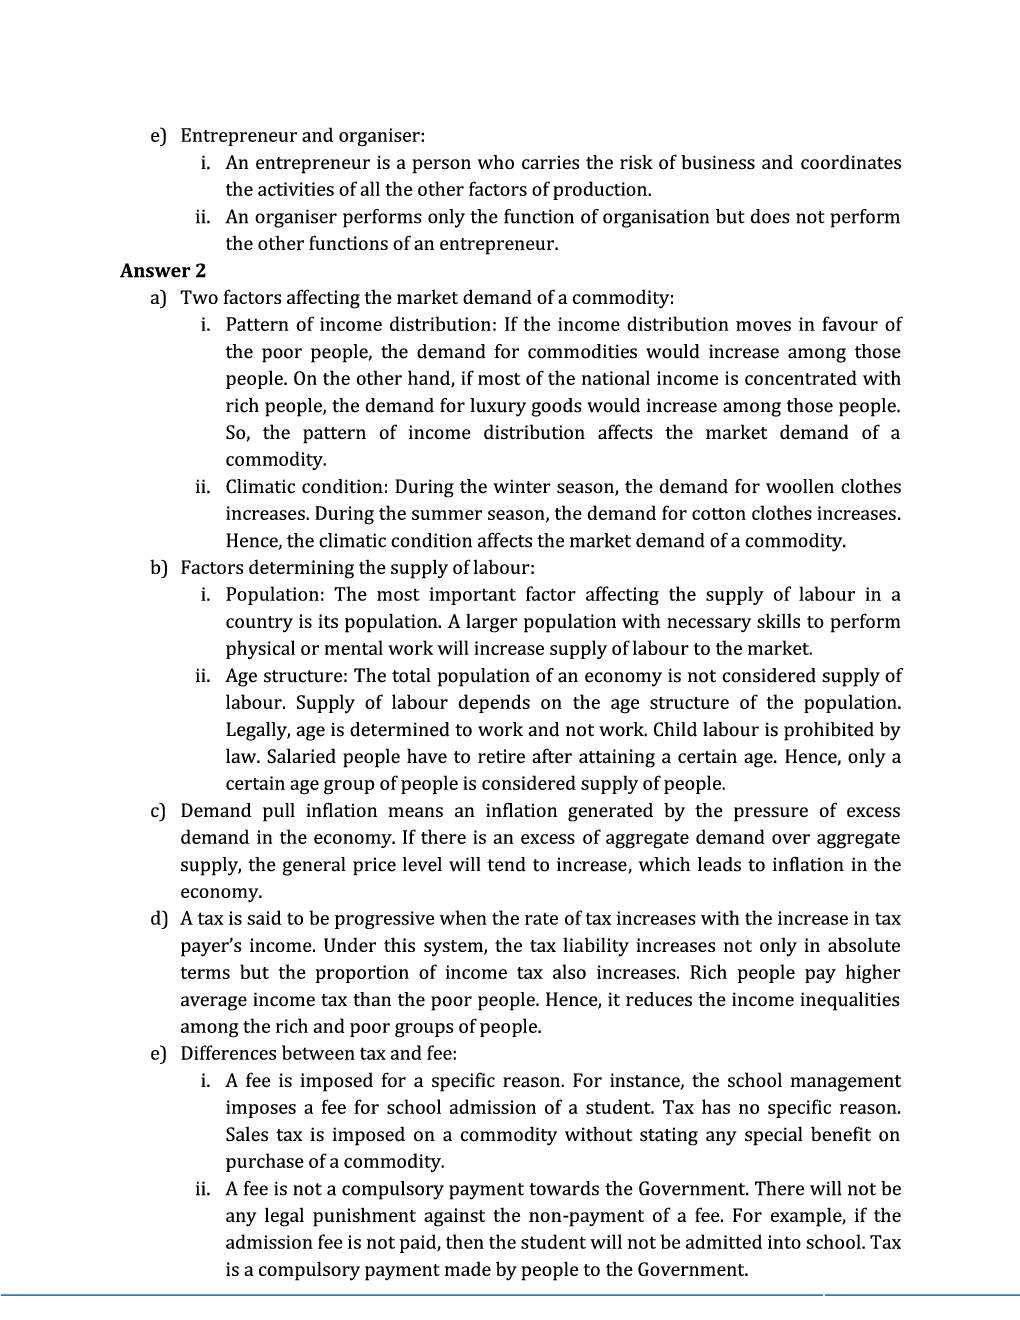 ICSE Sample Question Papers For Class 10 Economics - Page 5